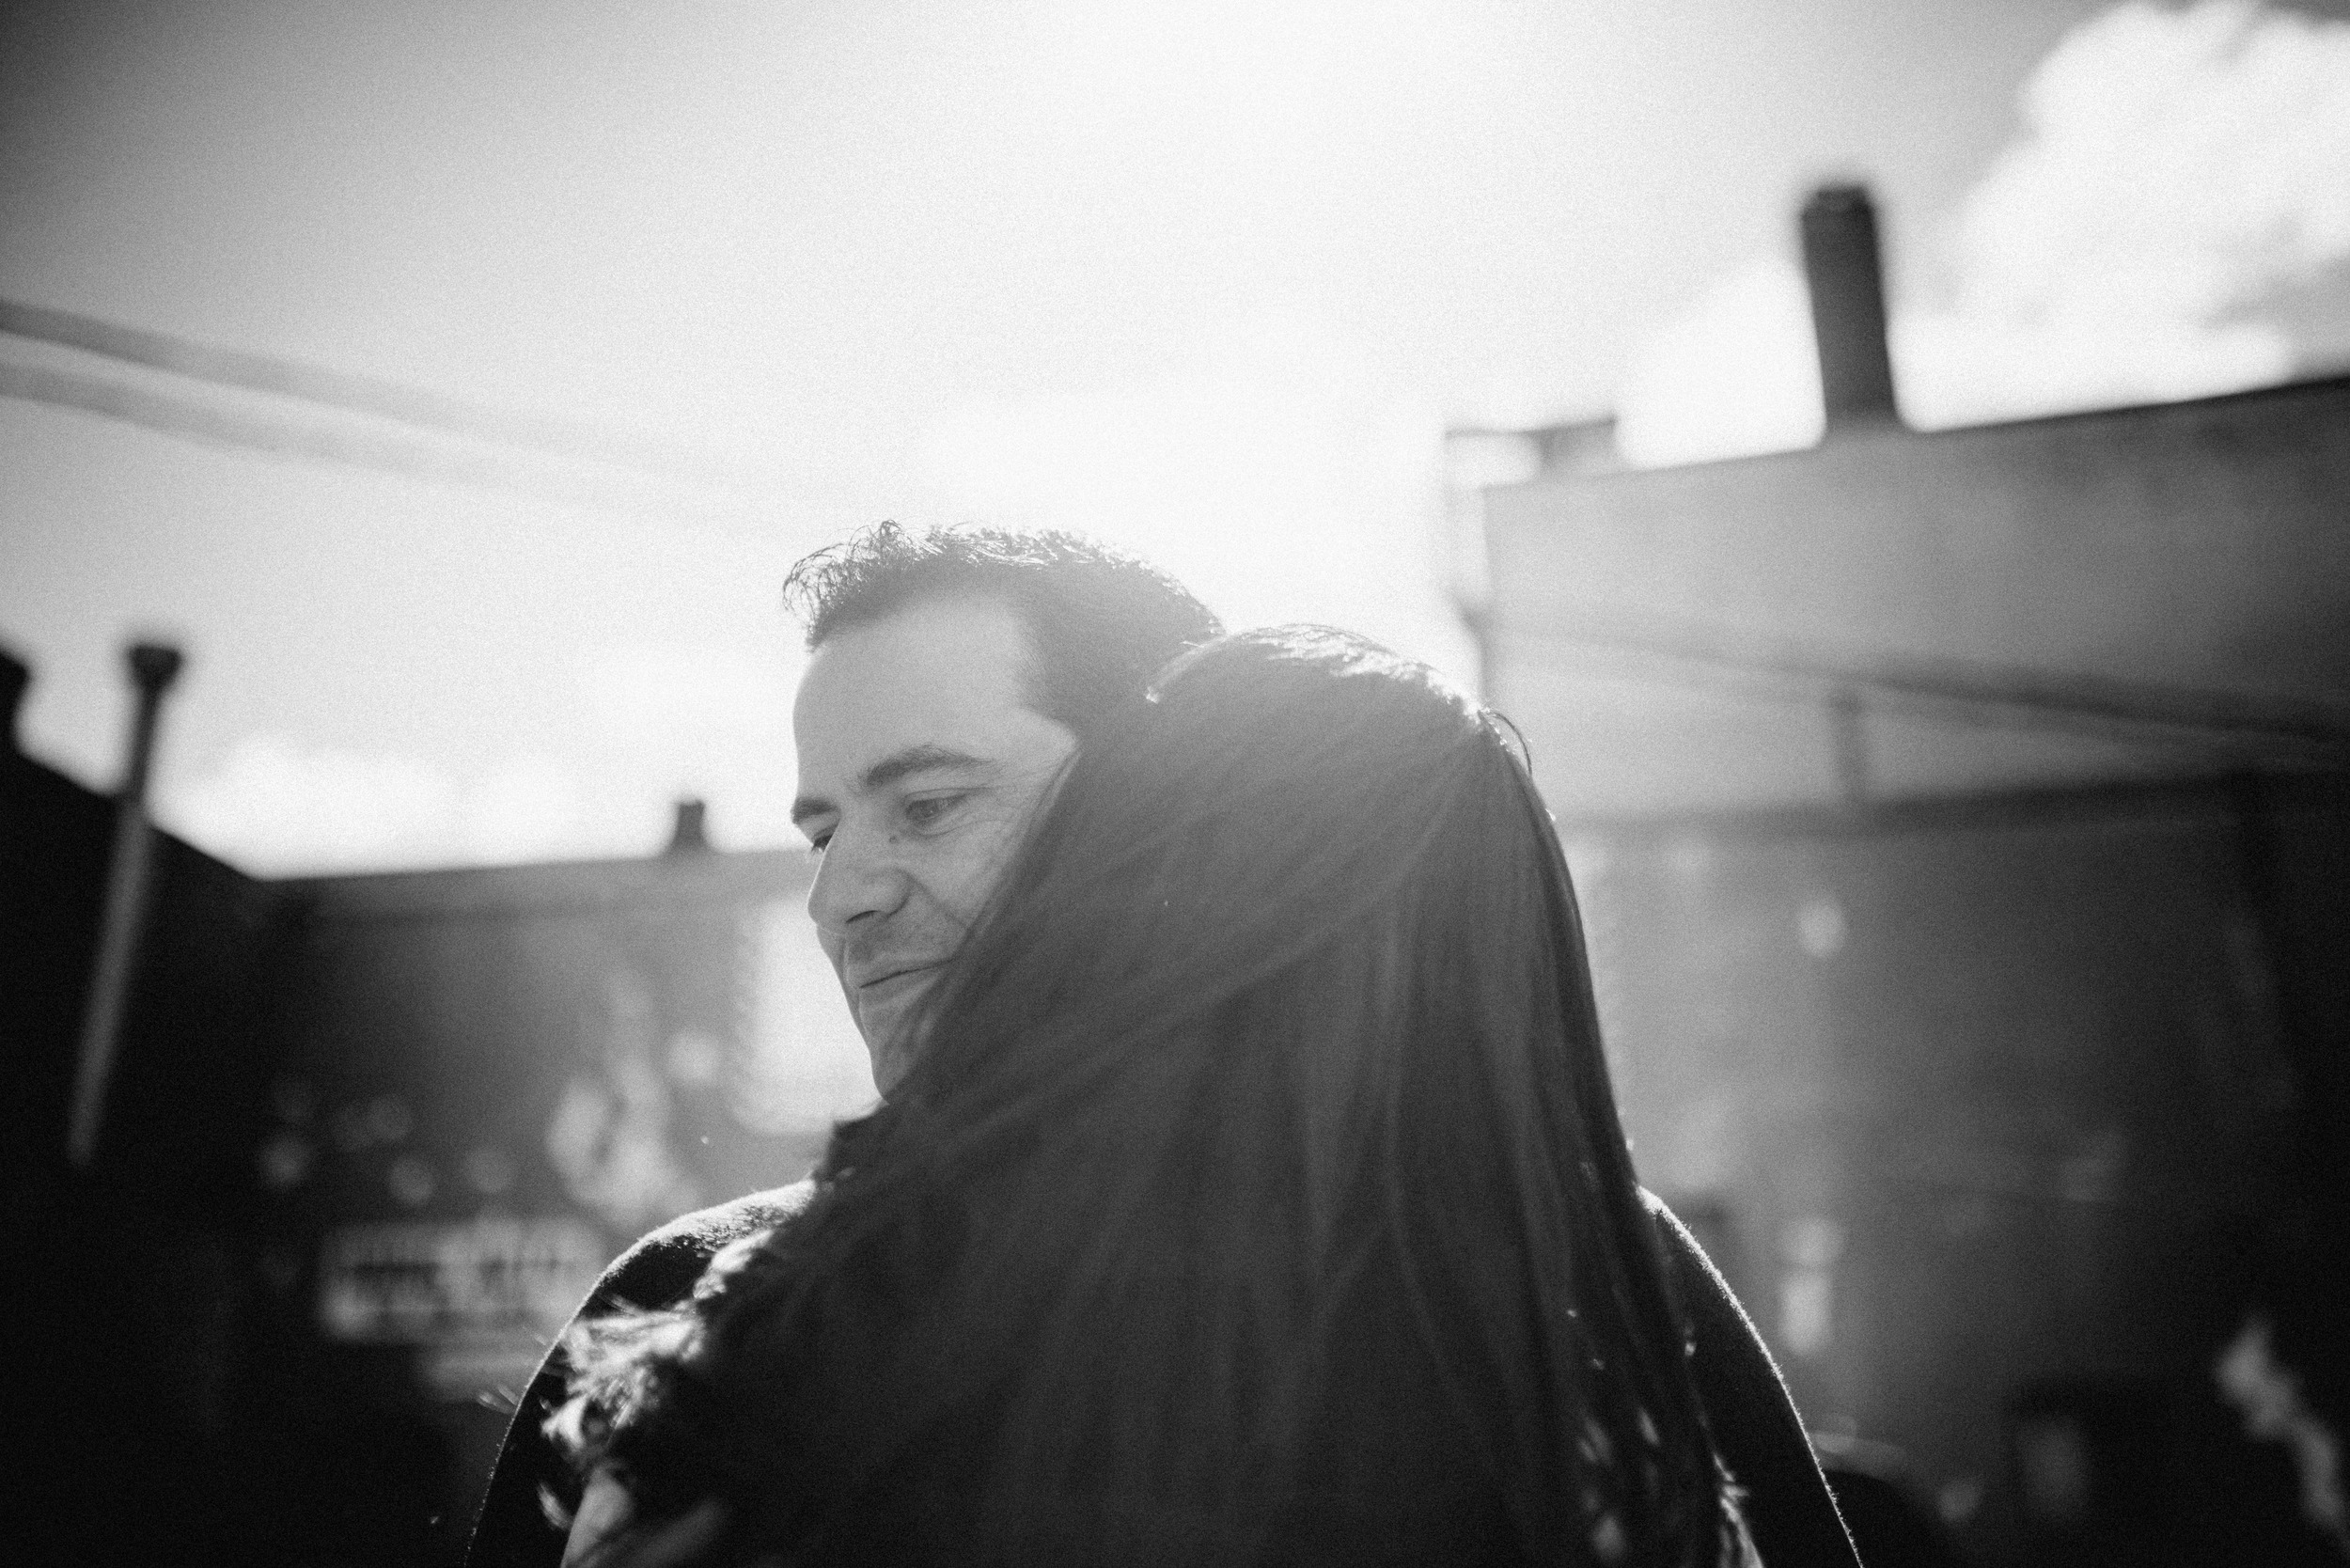 Mike embracing his fiance during photojournalist engagement shoot